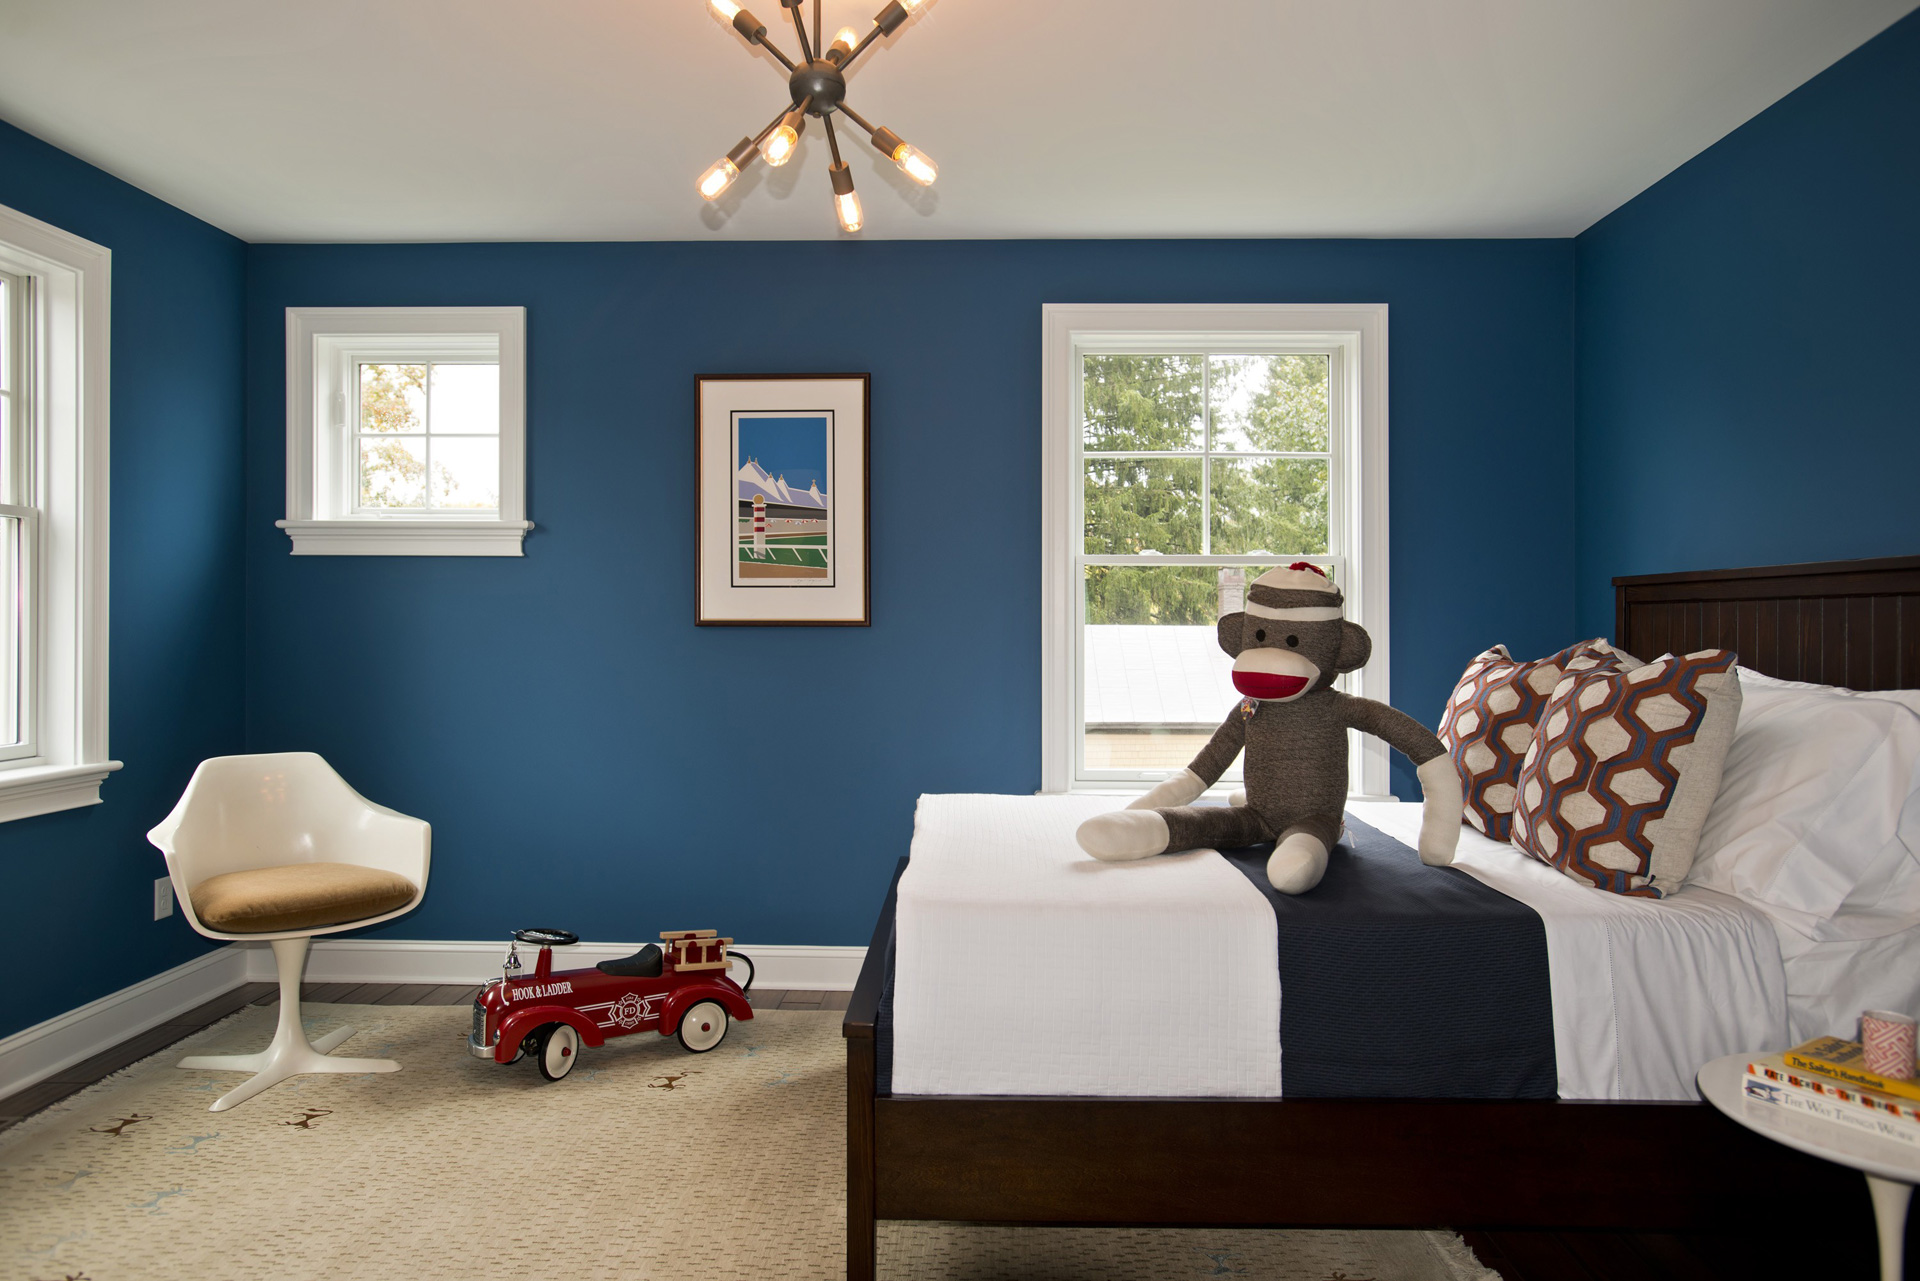 Make the guest room blue